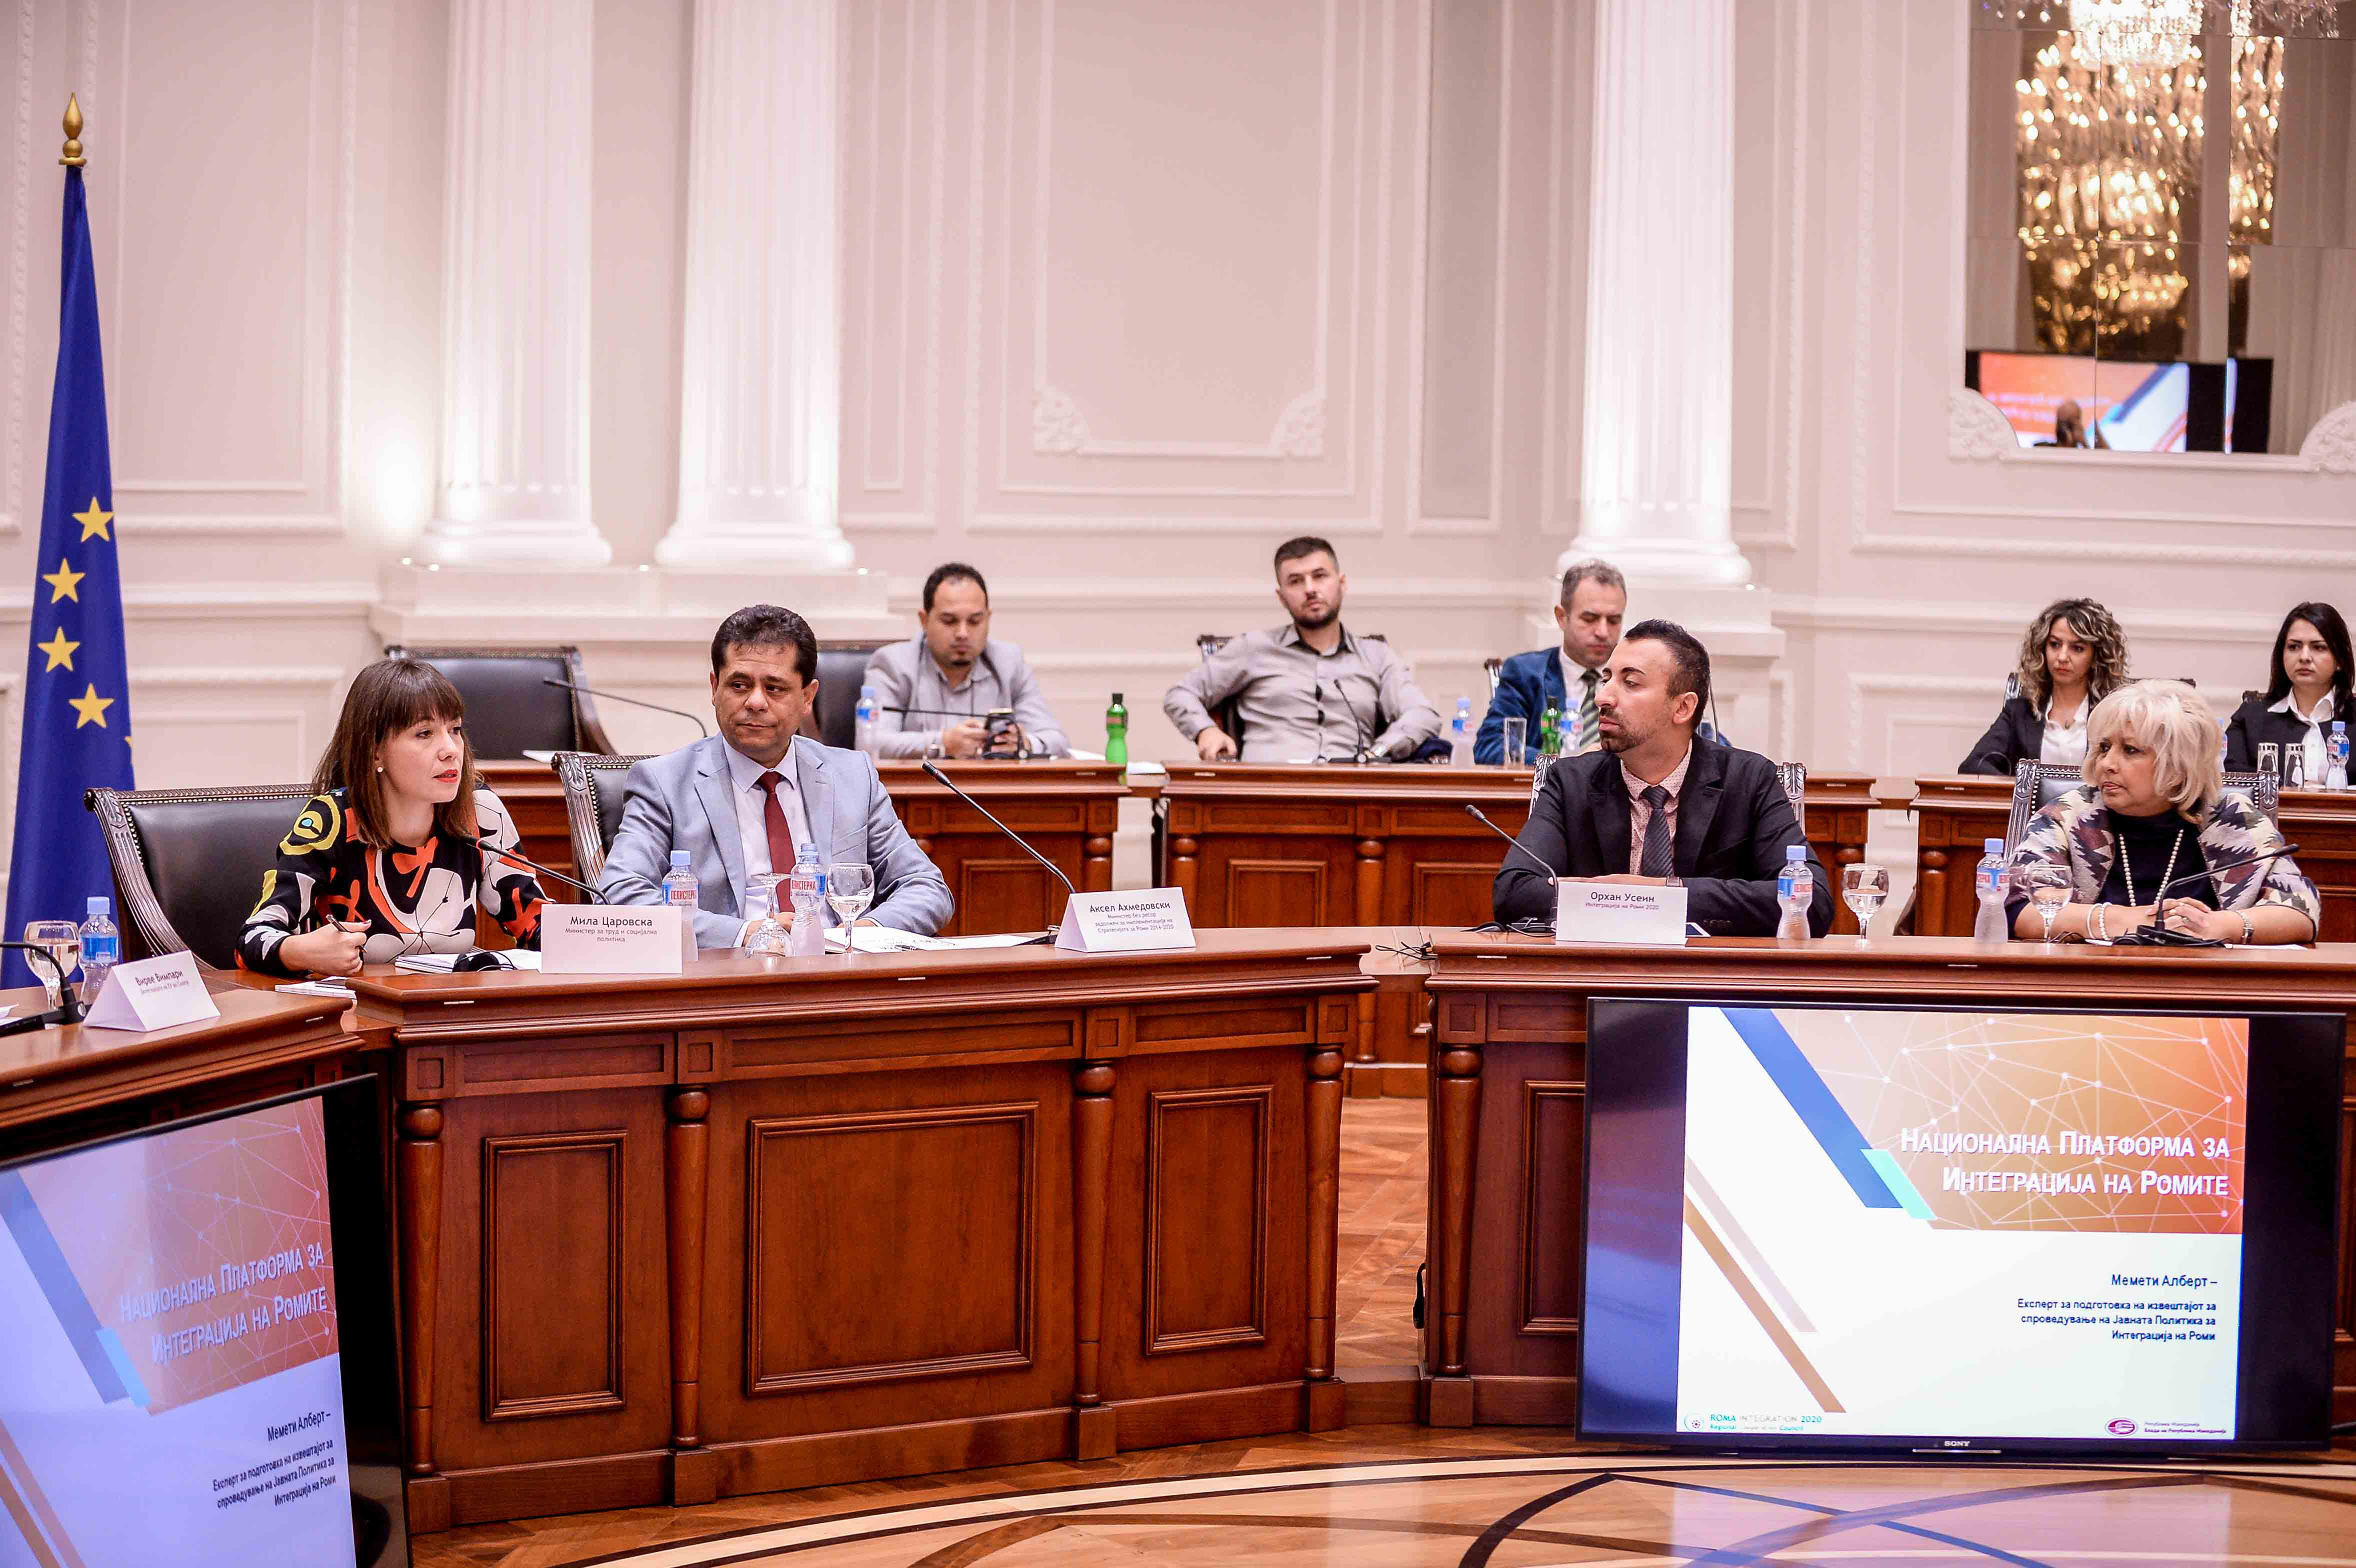 The second national platform on Roma Integration on assessing the Roma integration policy achievements made in 2017 was held on 3 October 2018 in Skopje. (Photo: Government of The Former Yugoslav Republic of Macedonia)